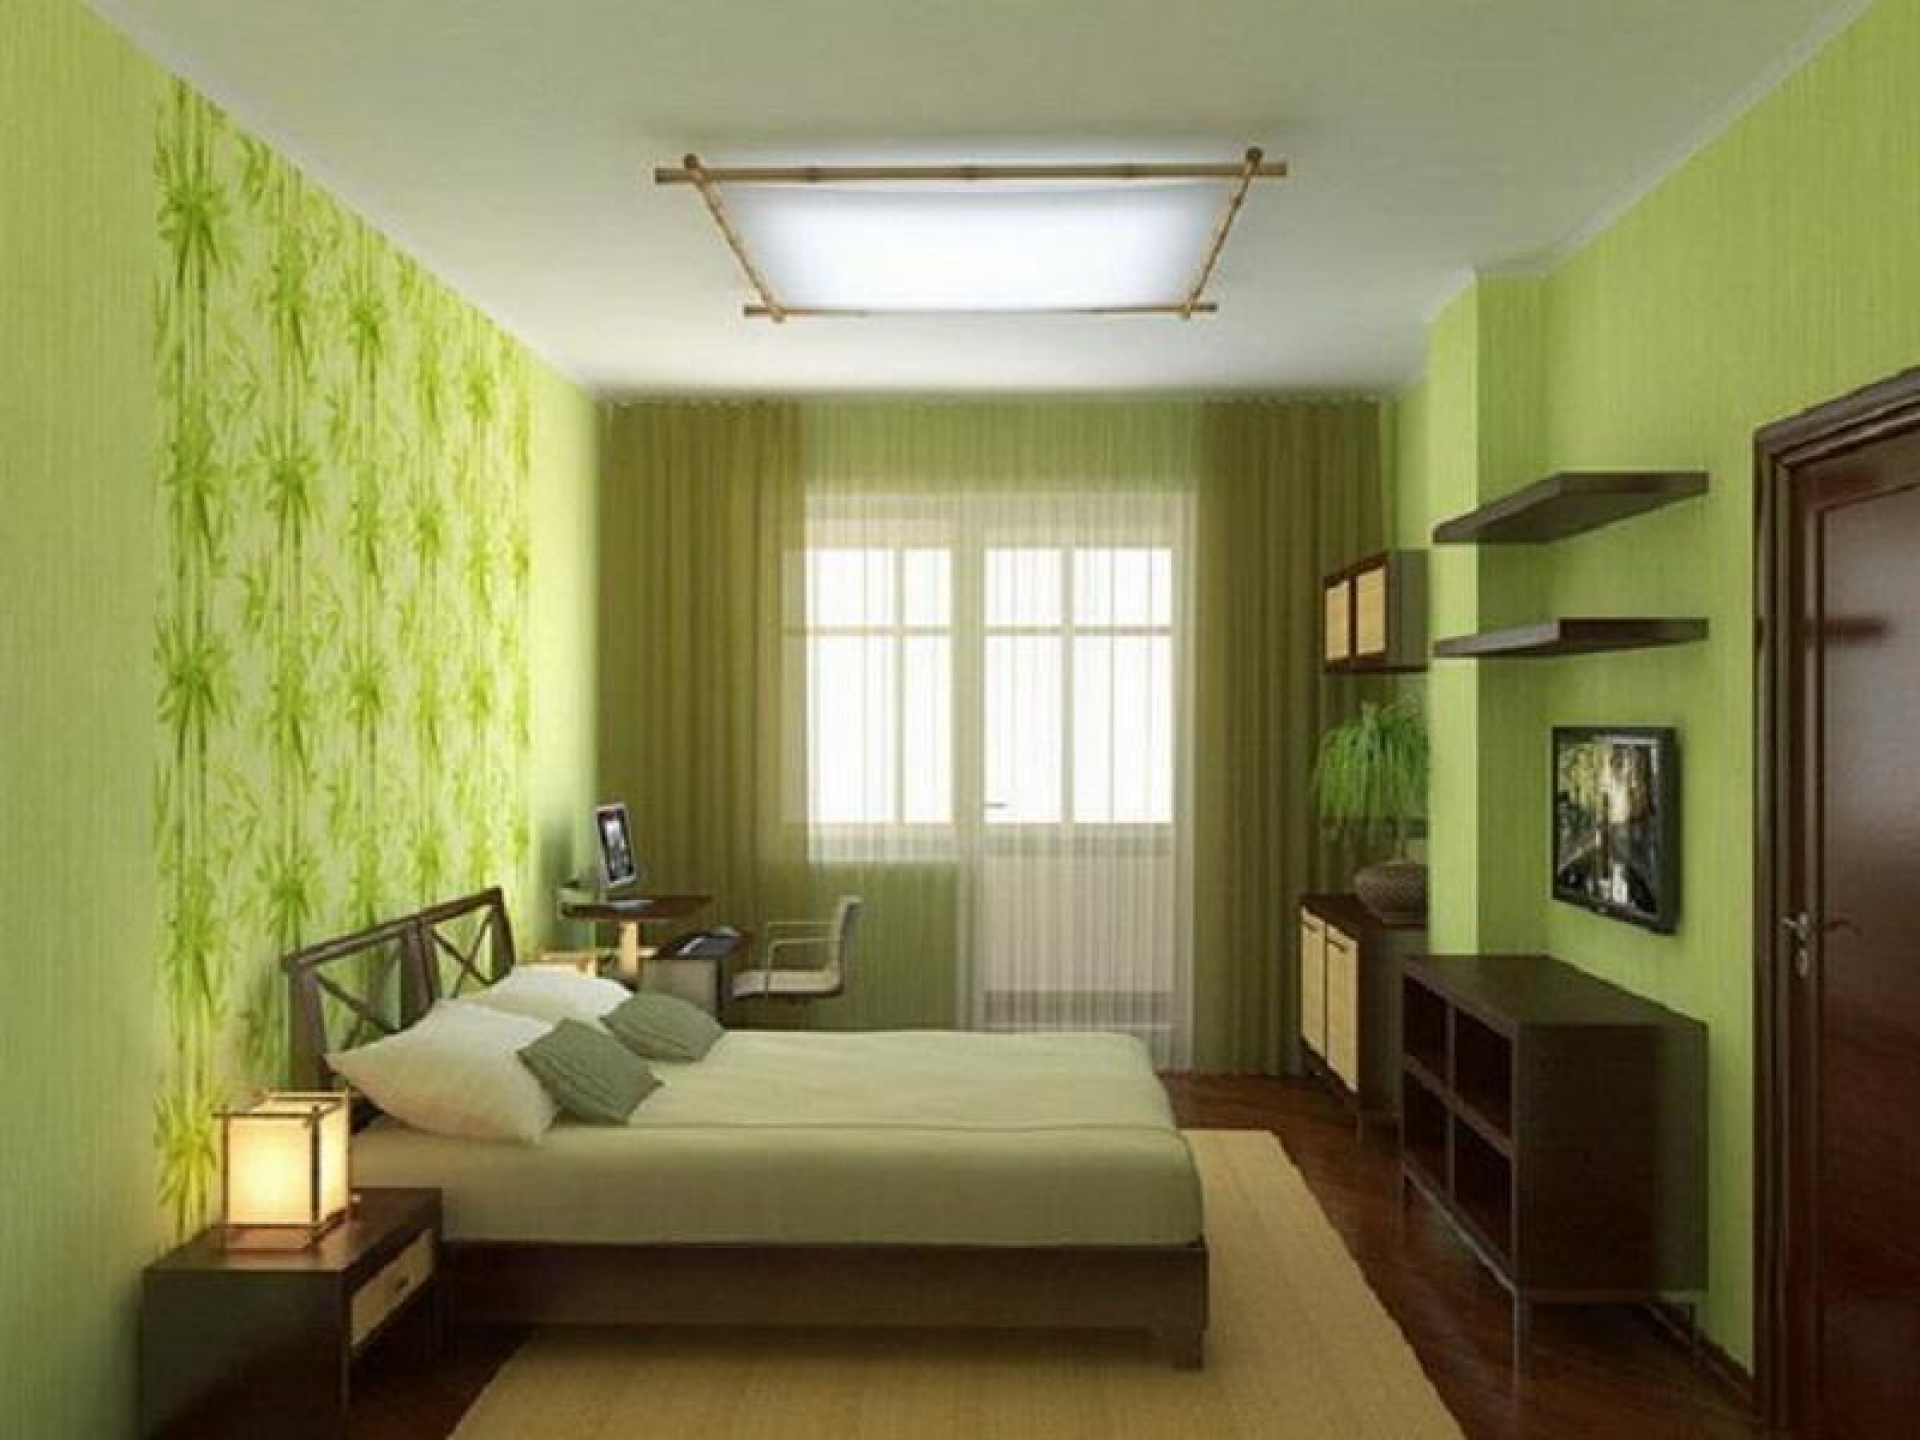 green and black bedroom design photo - 6